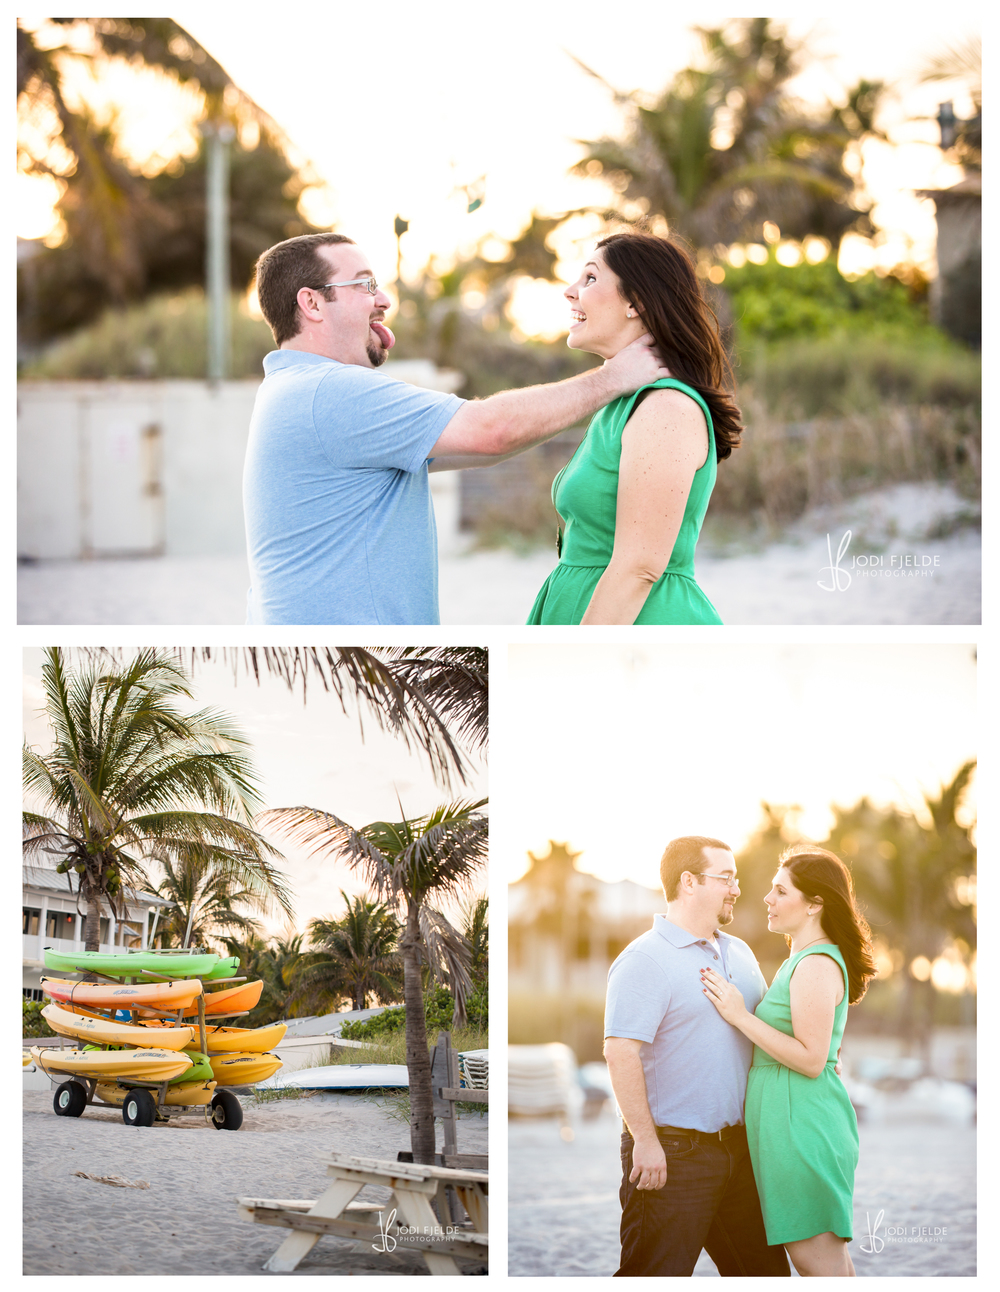 Delray_BEach_Sundy_HouseFlorida_engagement_E-session_Allison_&_Matt_photography_jodi_Fjelde_photography_10.jpg